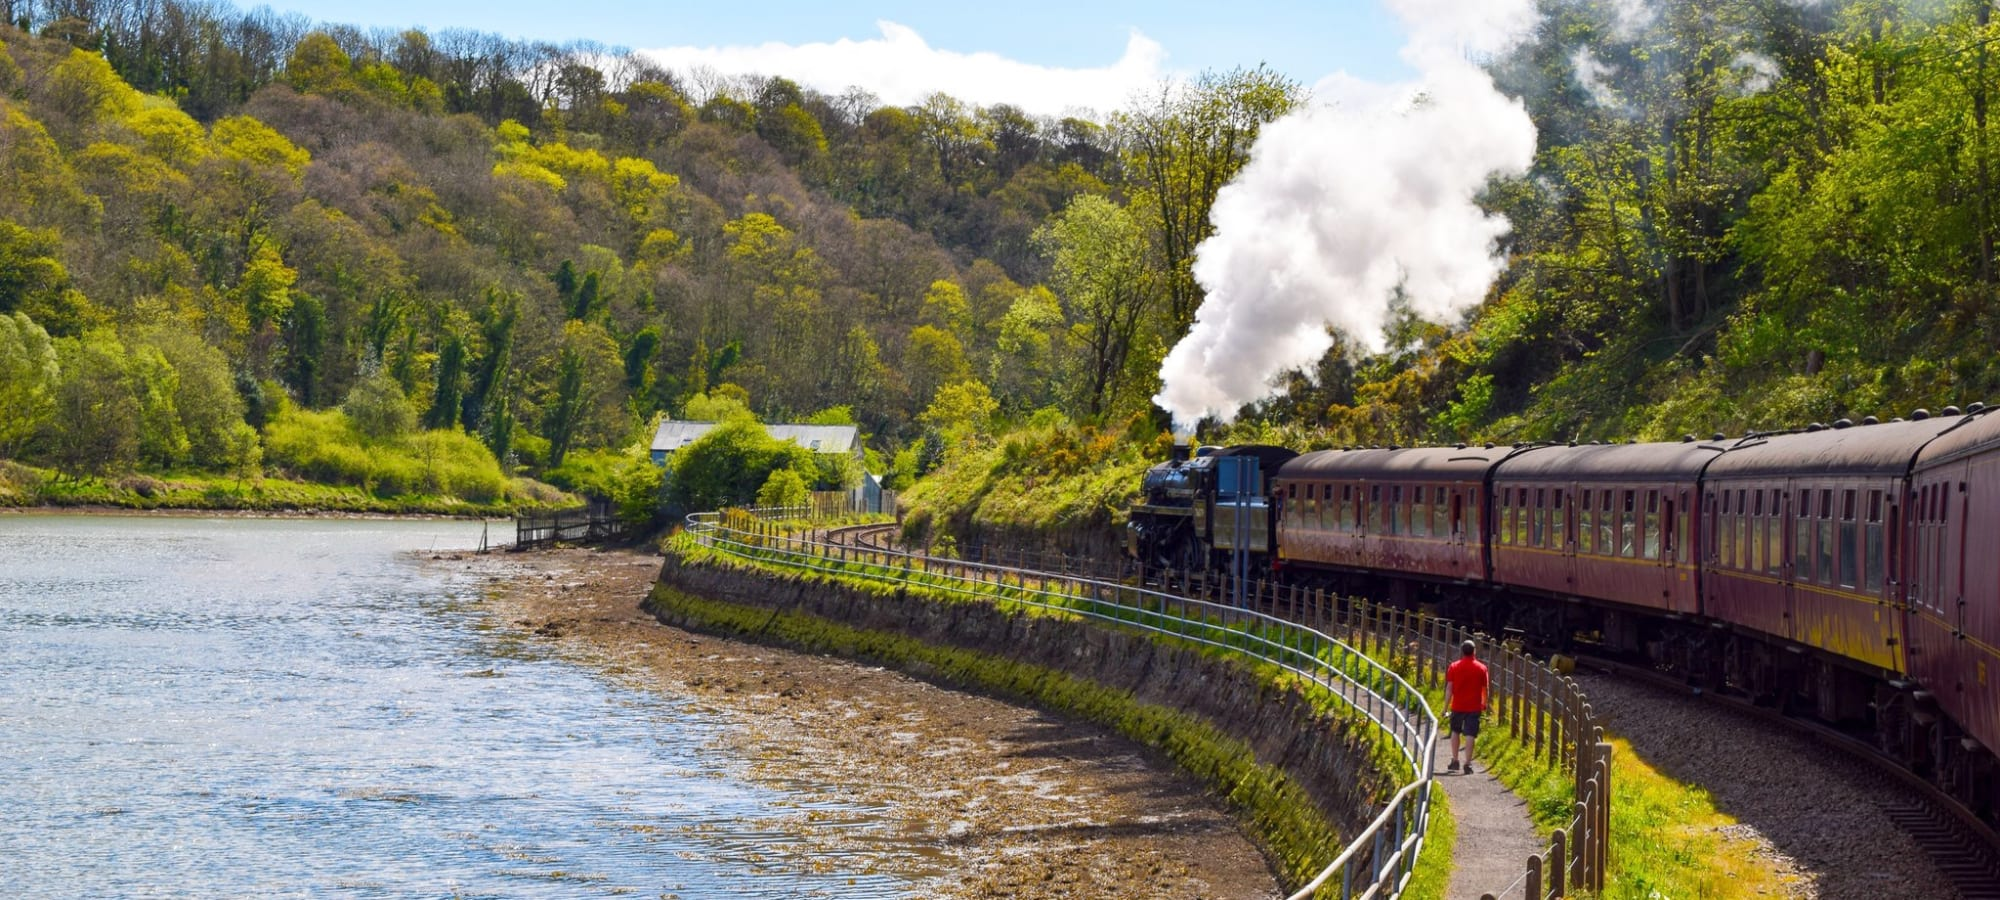 Local residents can save 50% off North Yorkshire Moors Railway